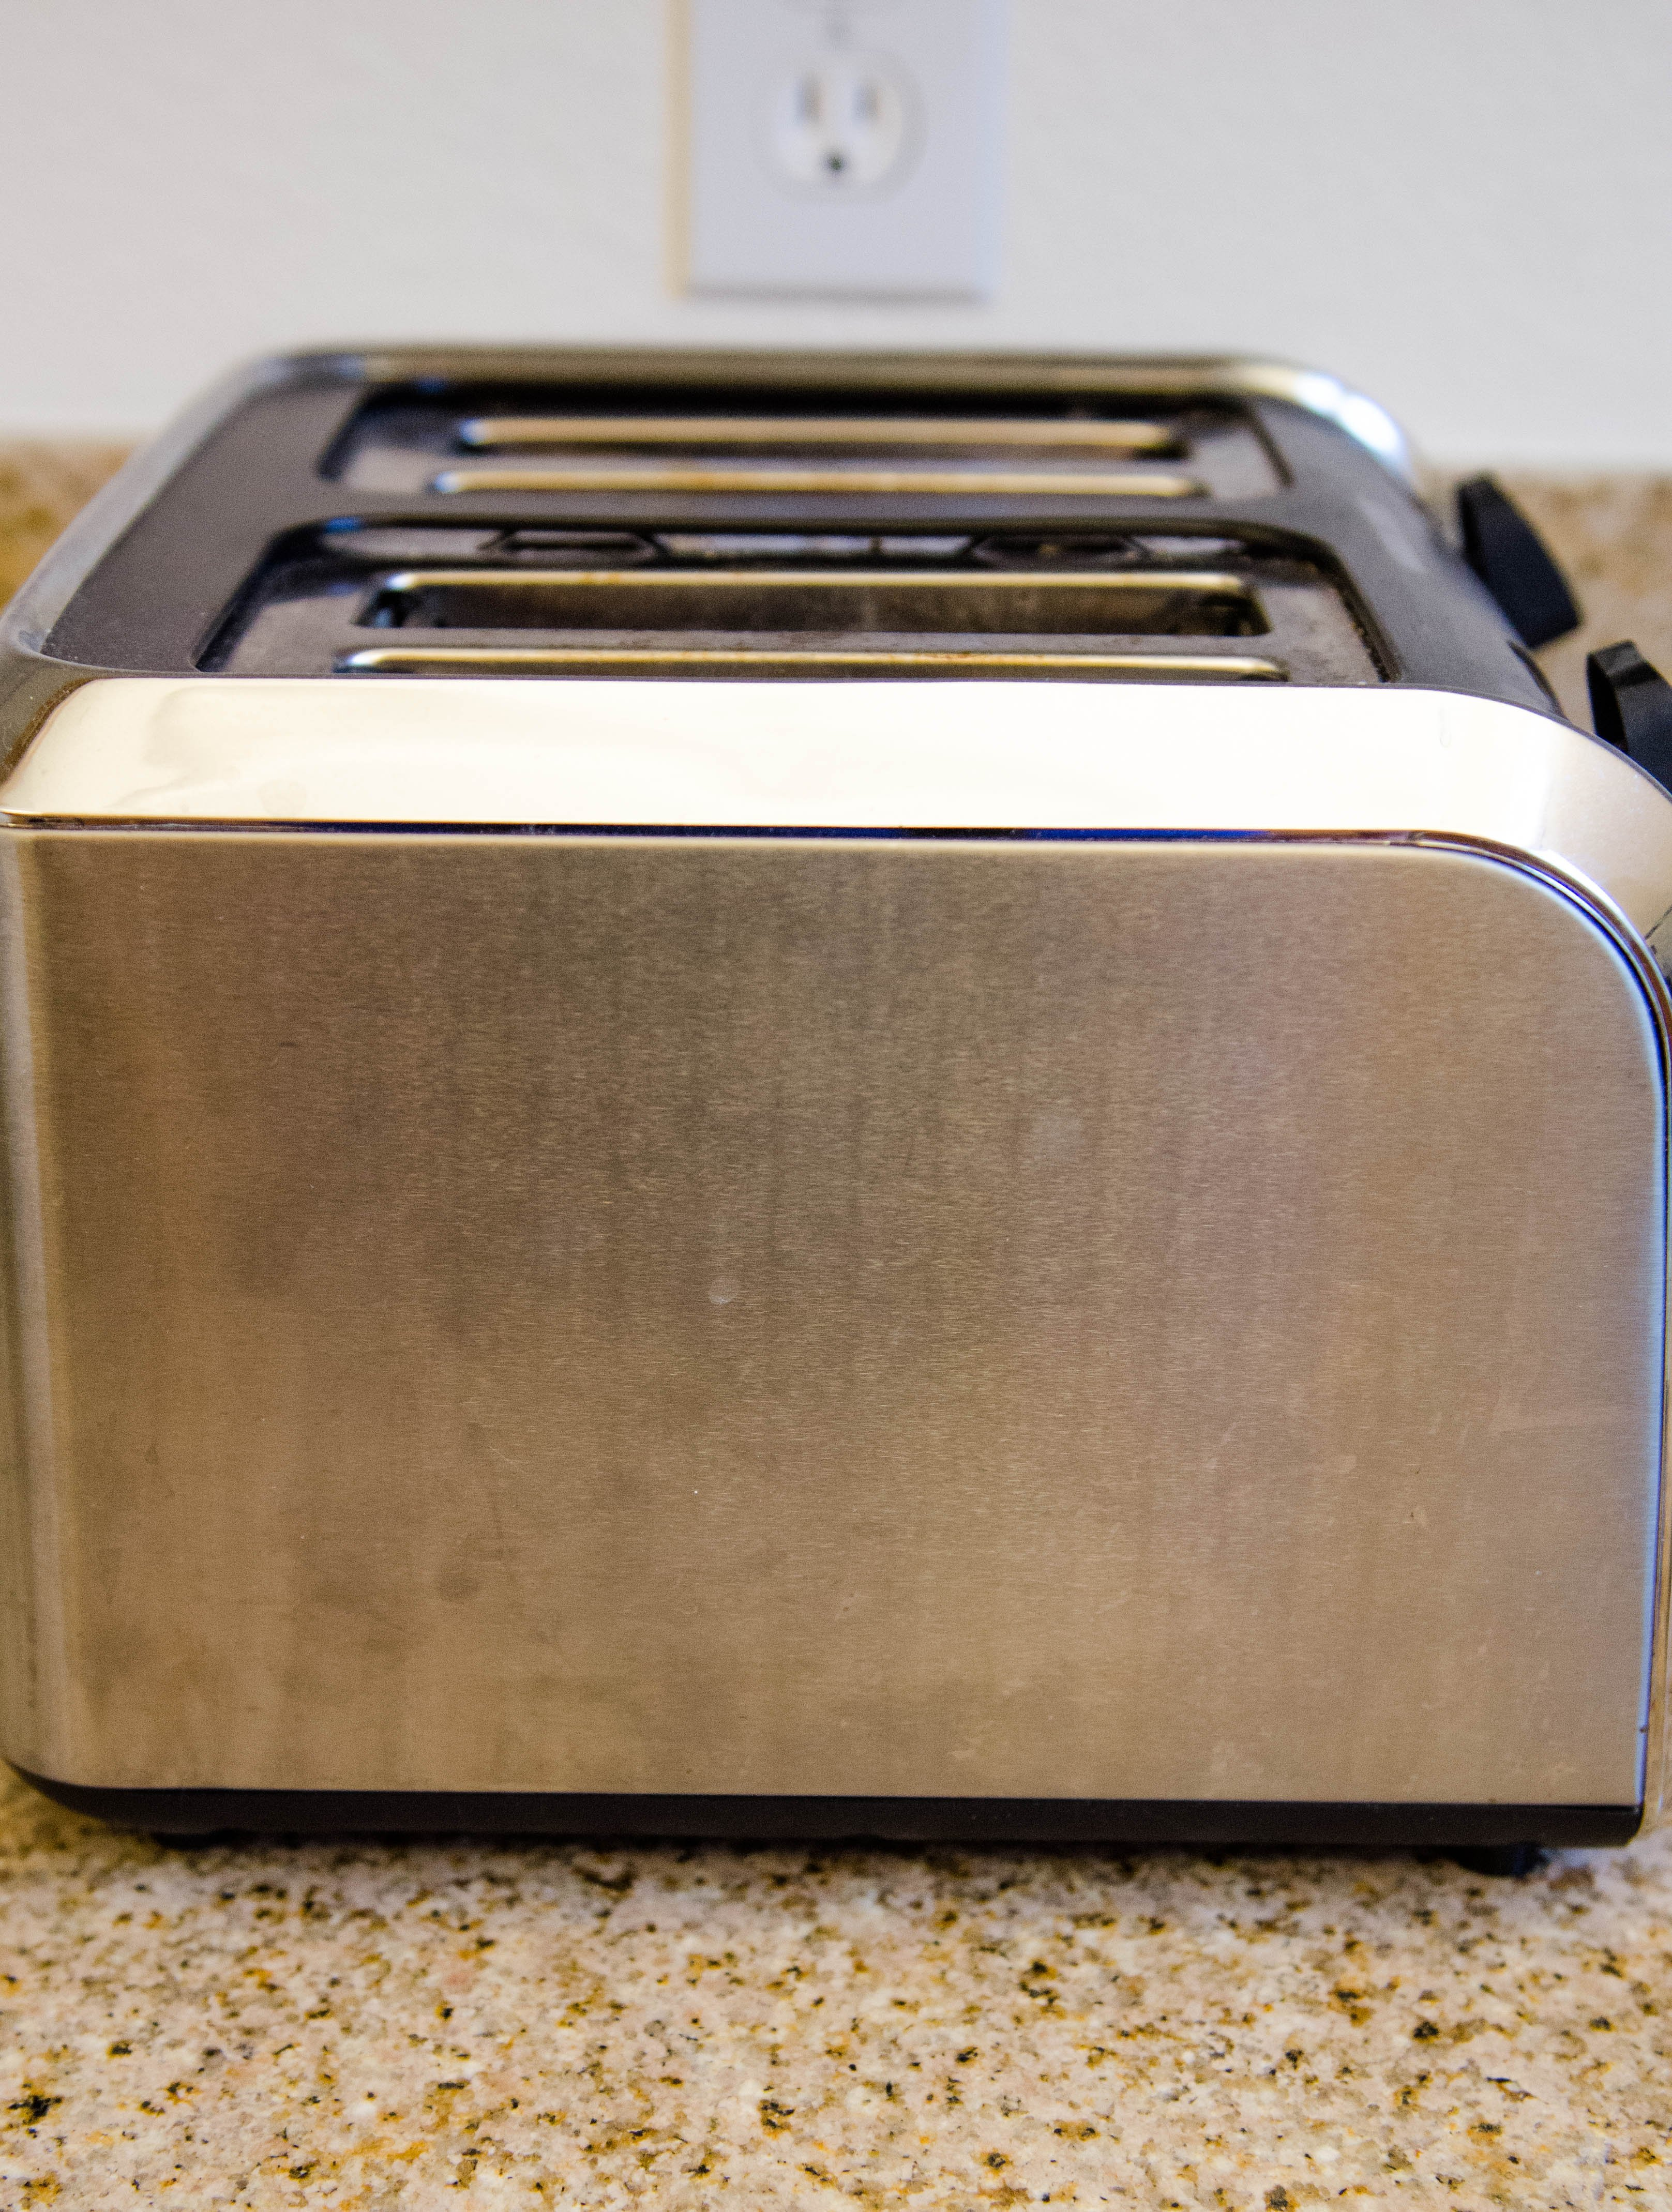 How To Clean Stainless Steel Liances Kitchn